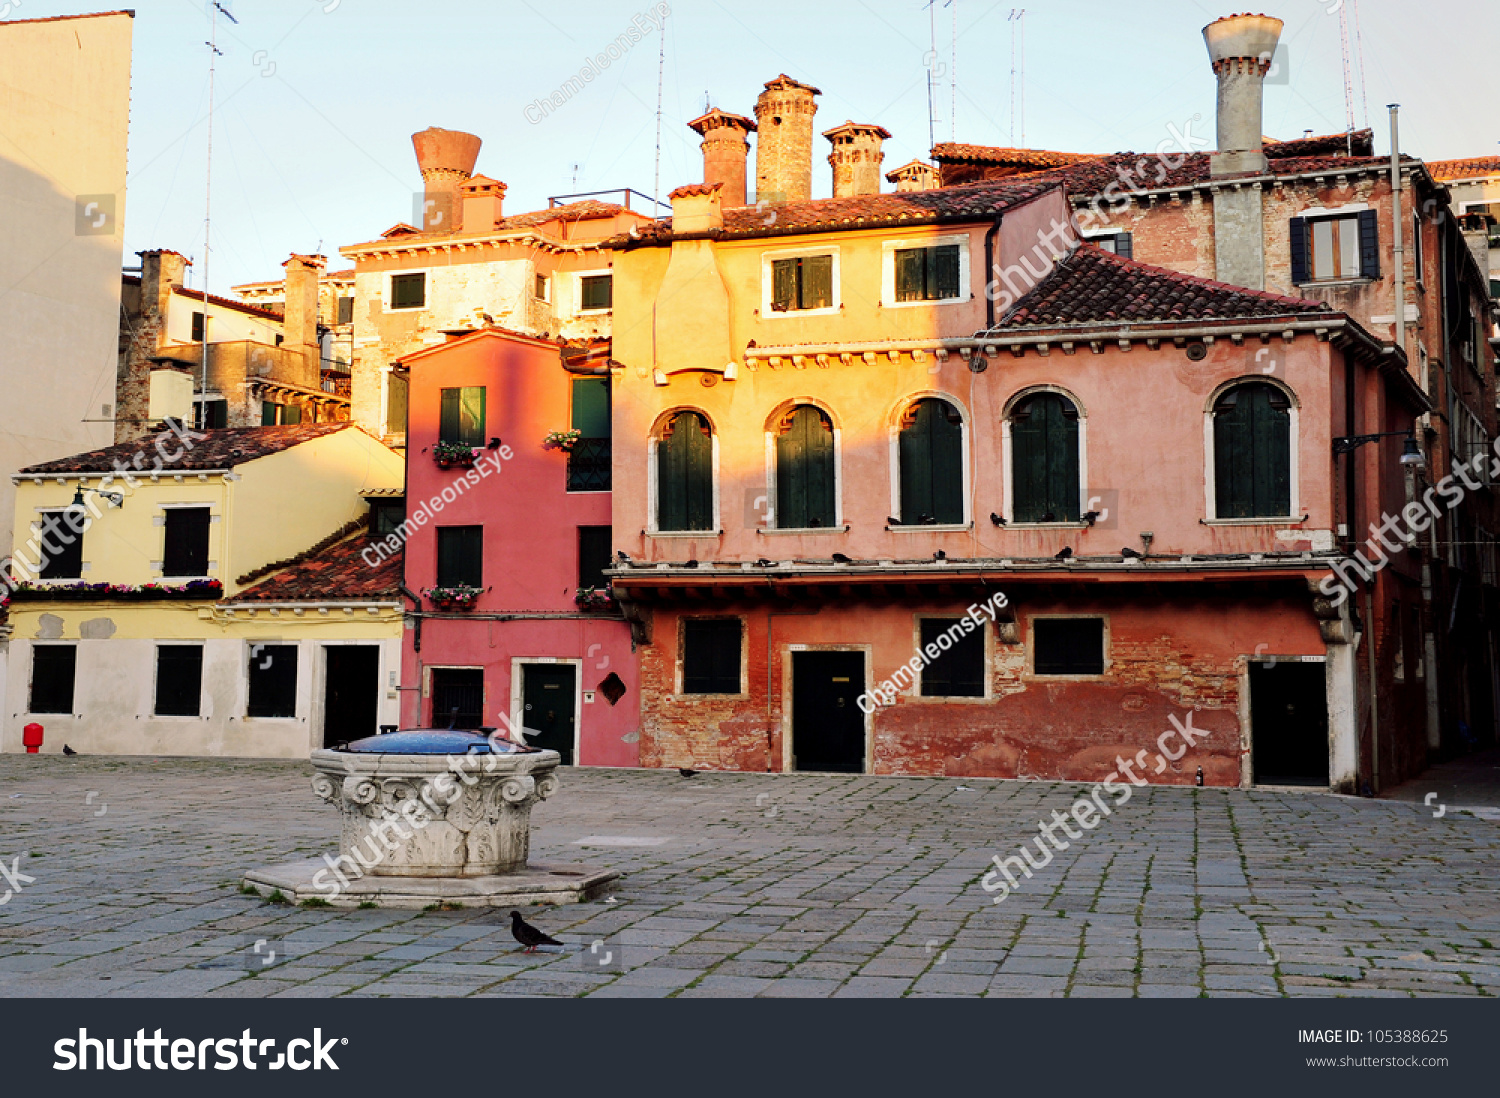 Old Apartments Building In Venice, Italy. Stock Photo ...